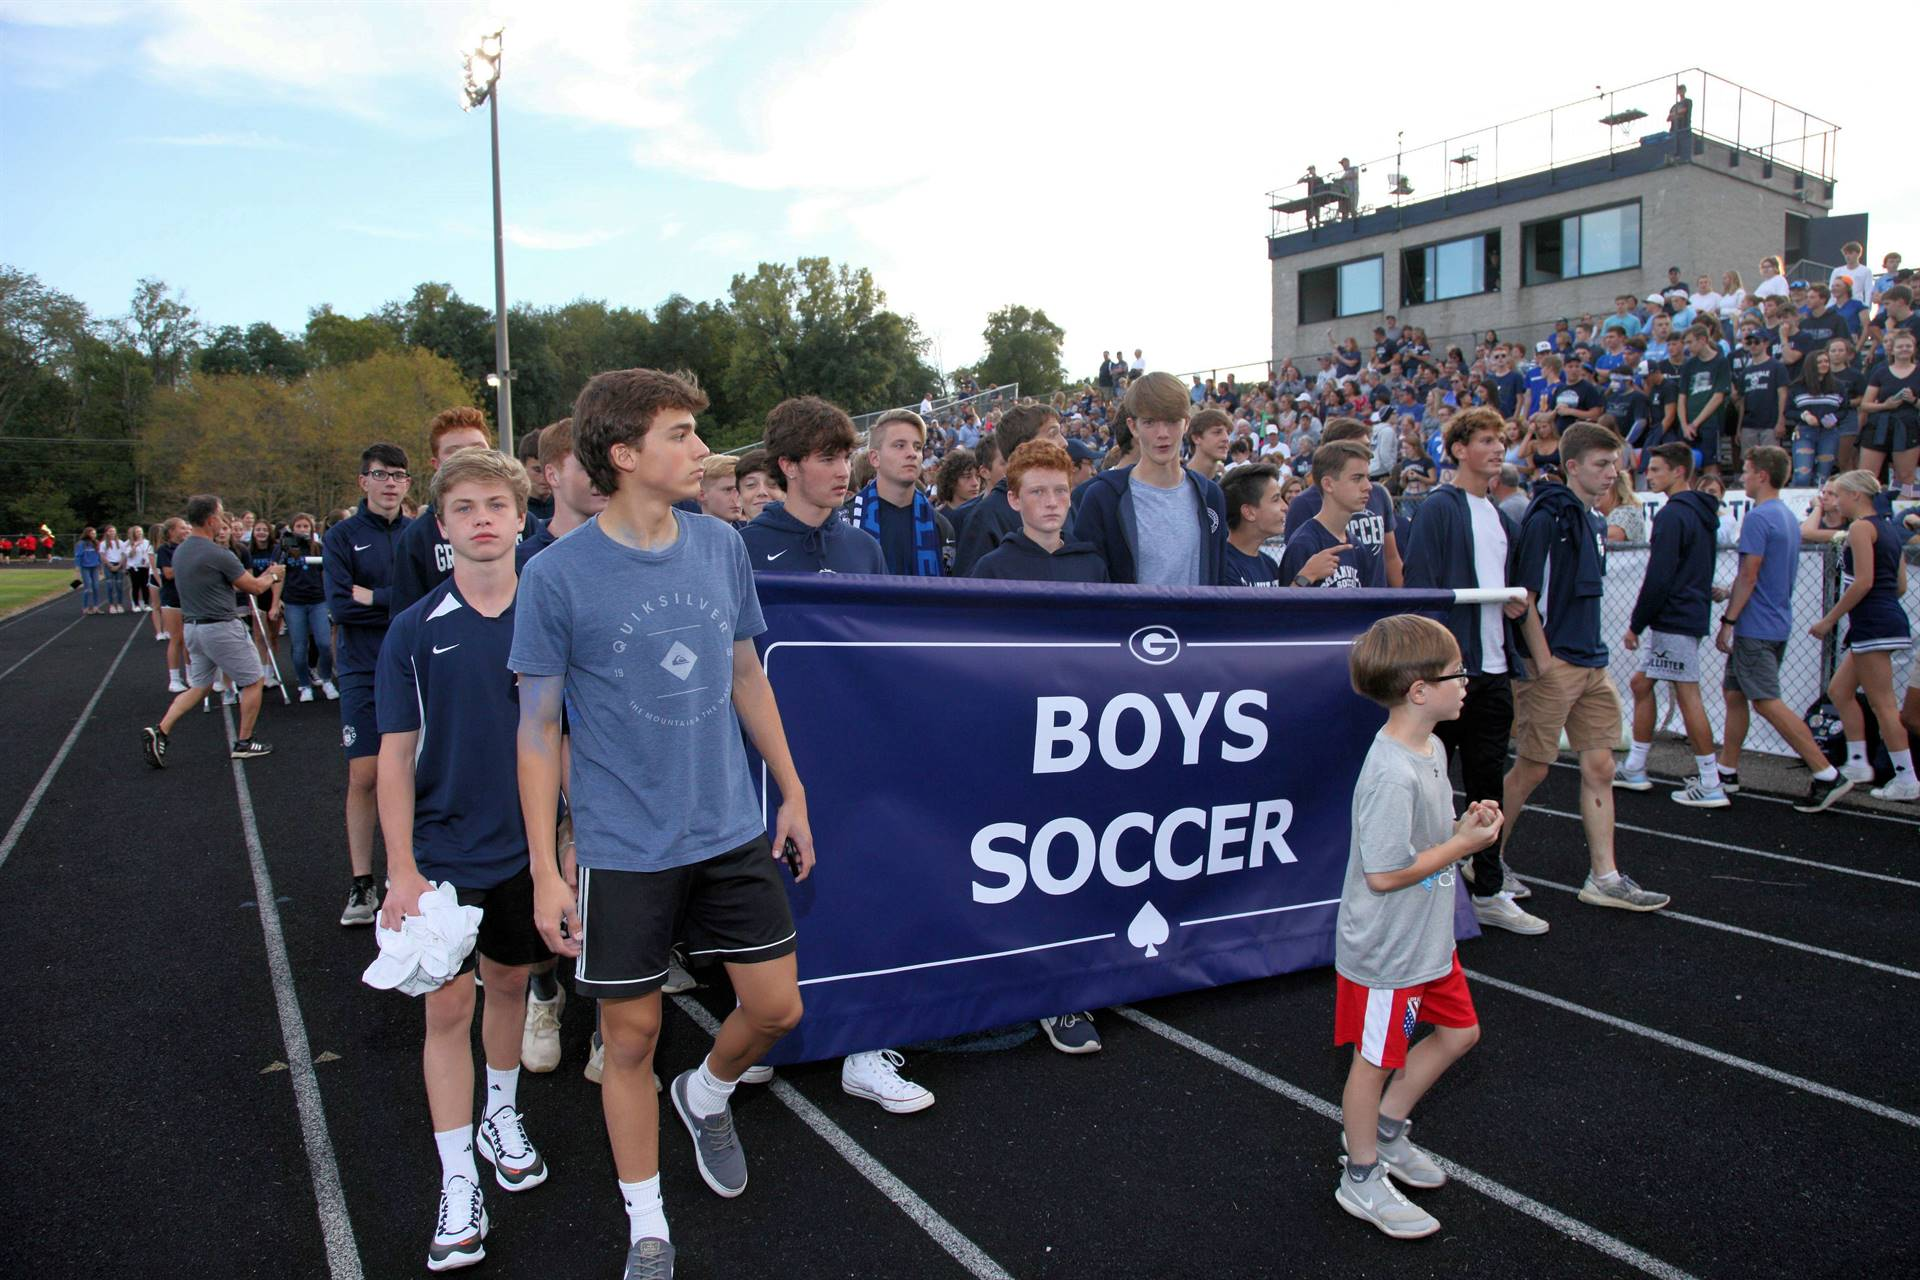 Boys Soccer in Homecoming Parade